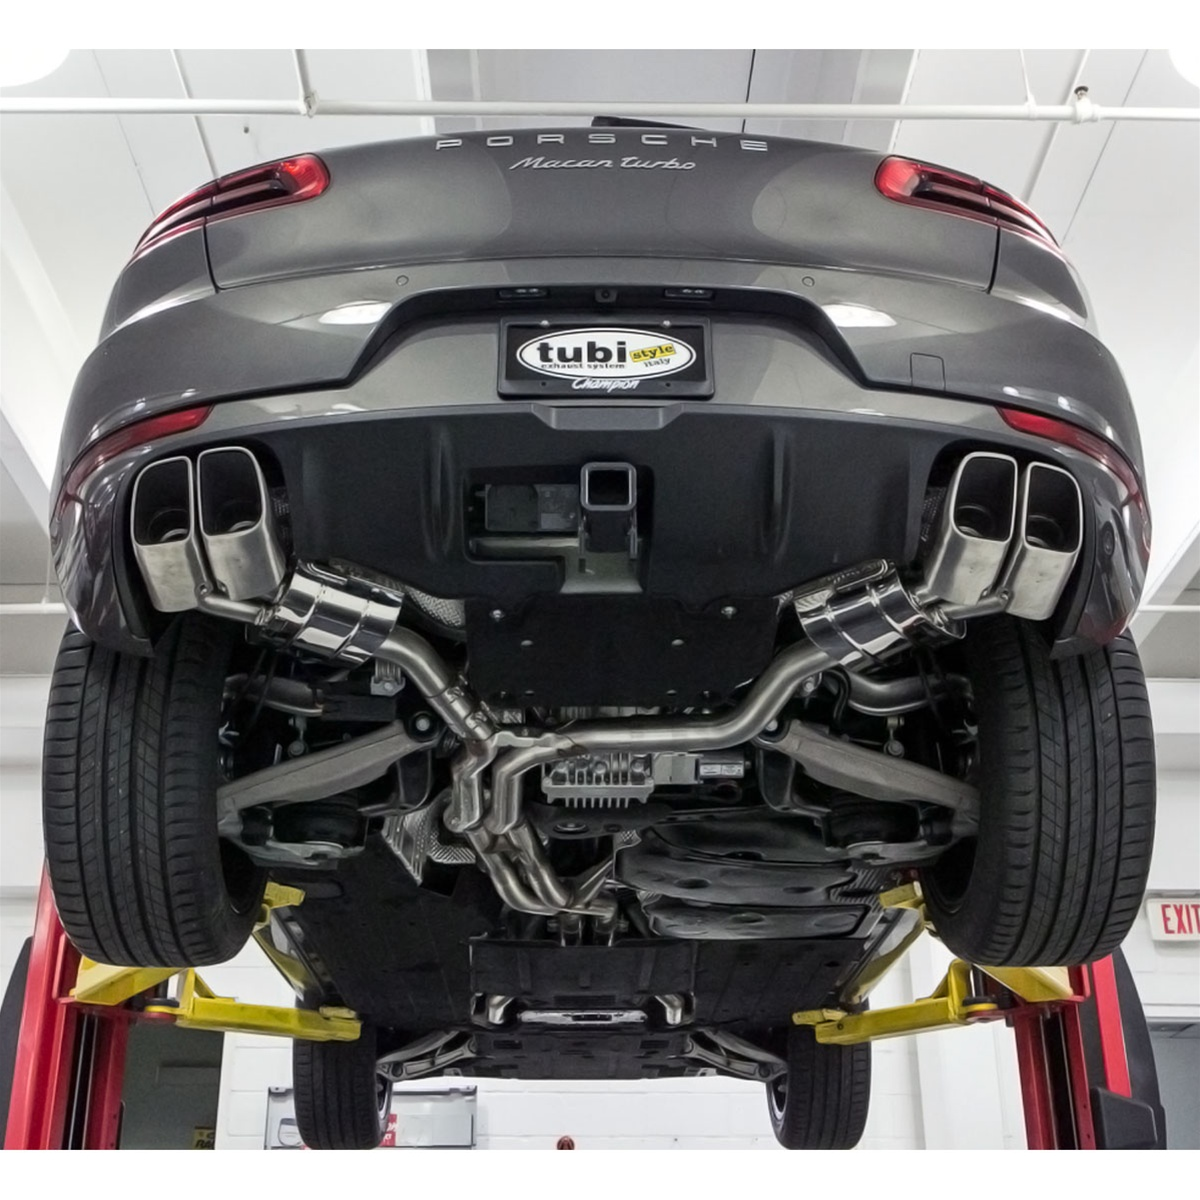 tubi exhaust system macan turbo